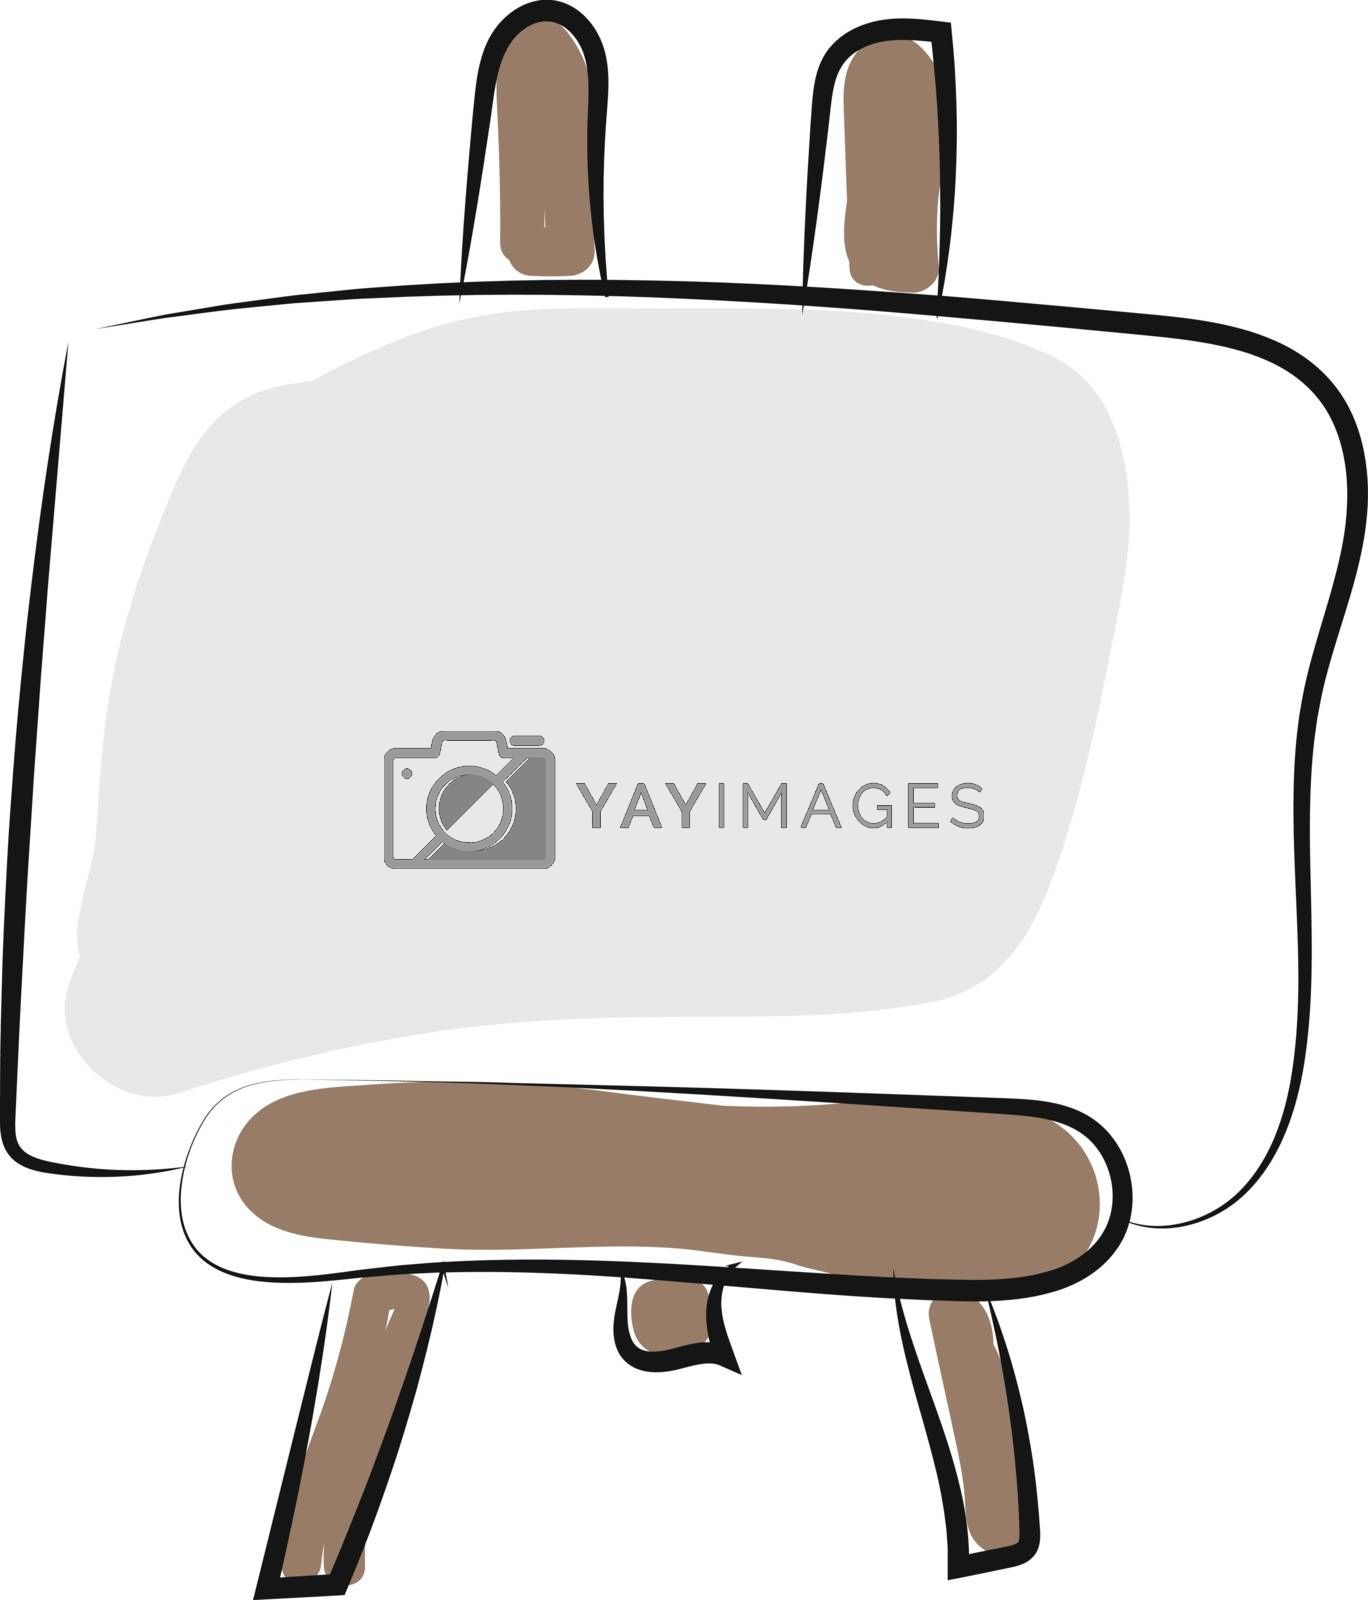 Royalty free image of Clipart of a flat and big white photo frame mounted on a wooden  by Morphart